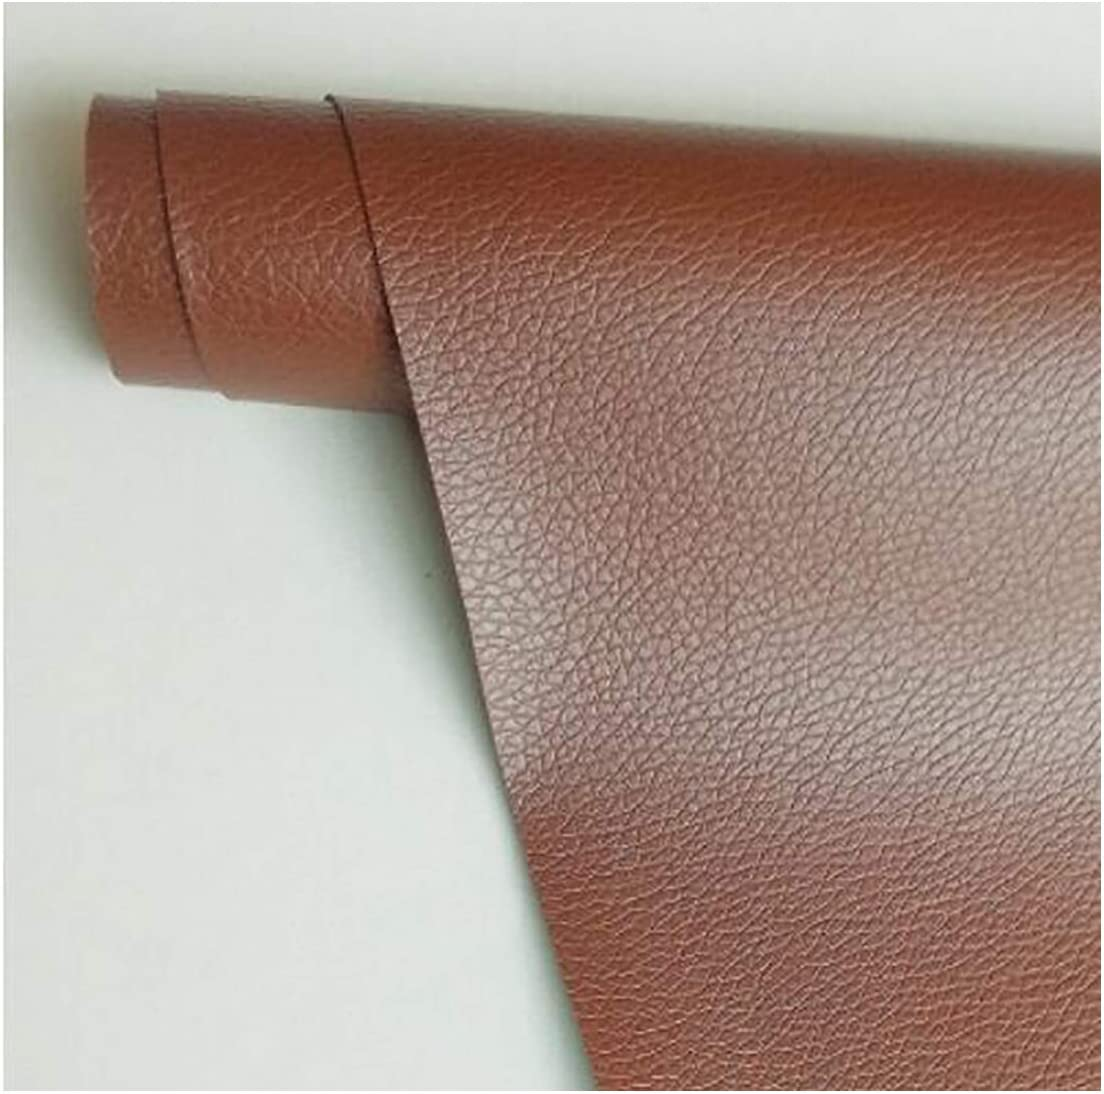 GERYUXA Faux Leather Fabric Sheets Max Free shipping 49% OFF Back for Cotton Self